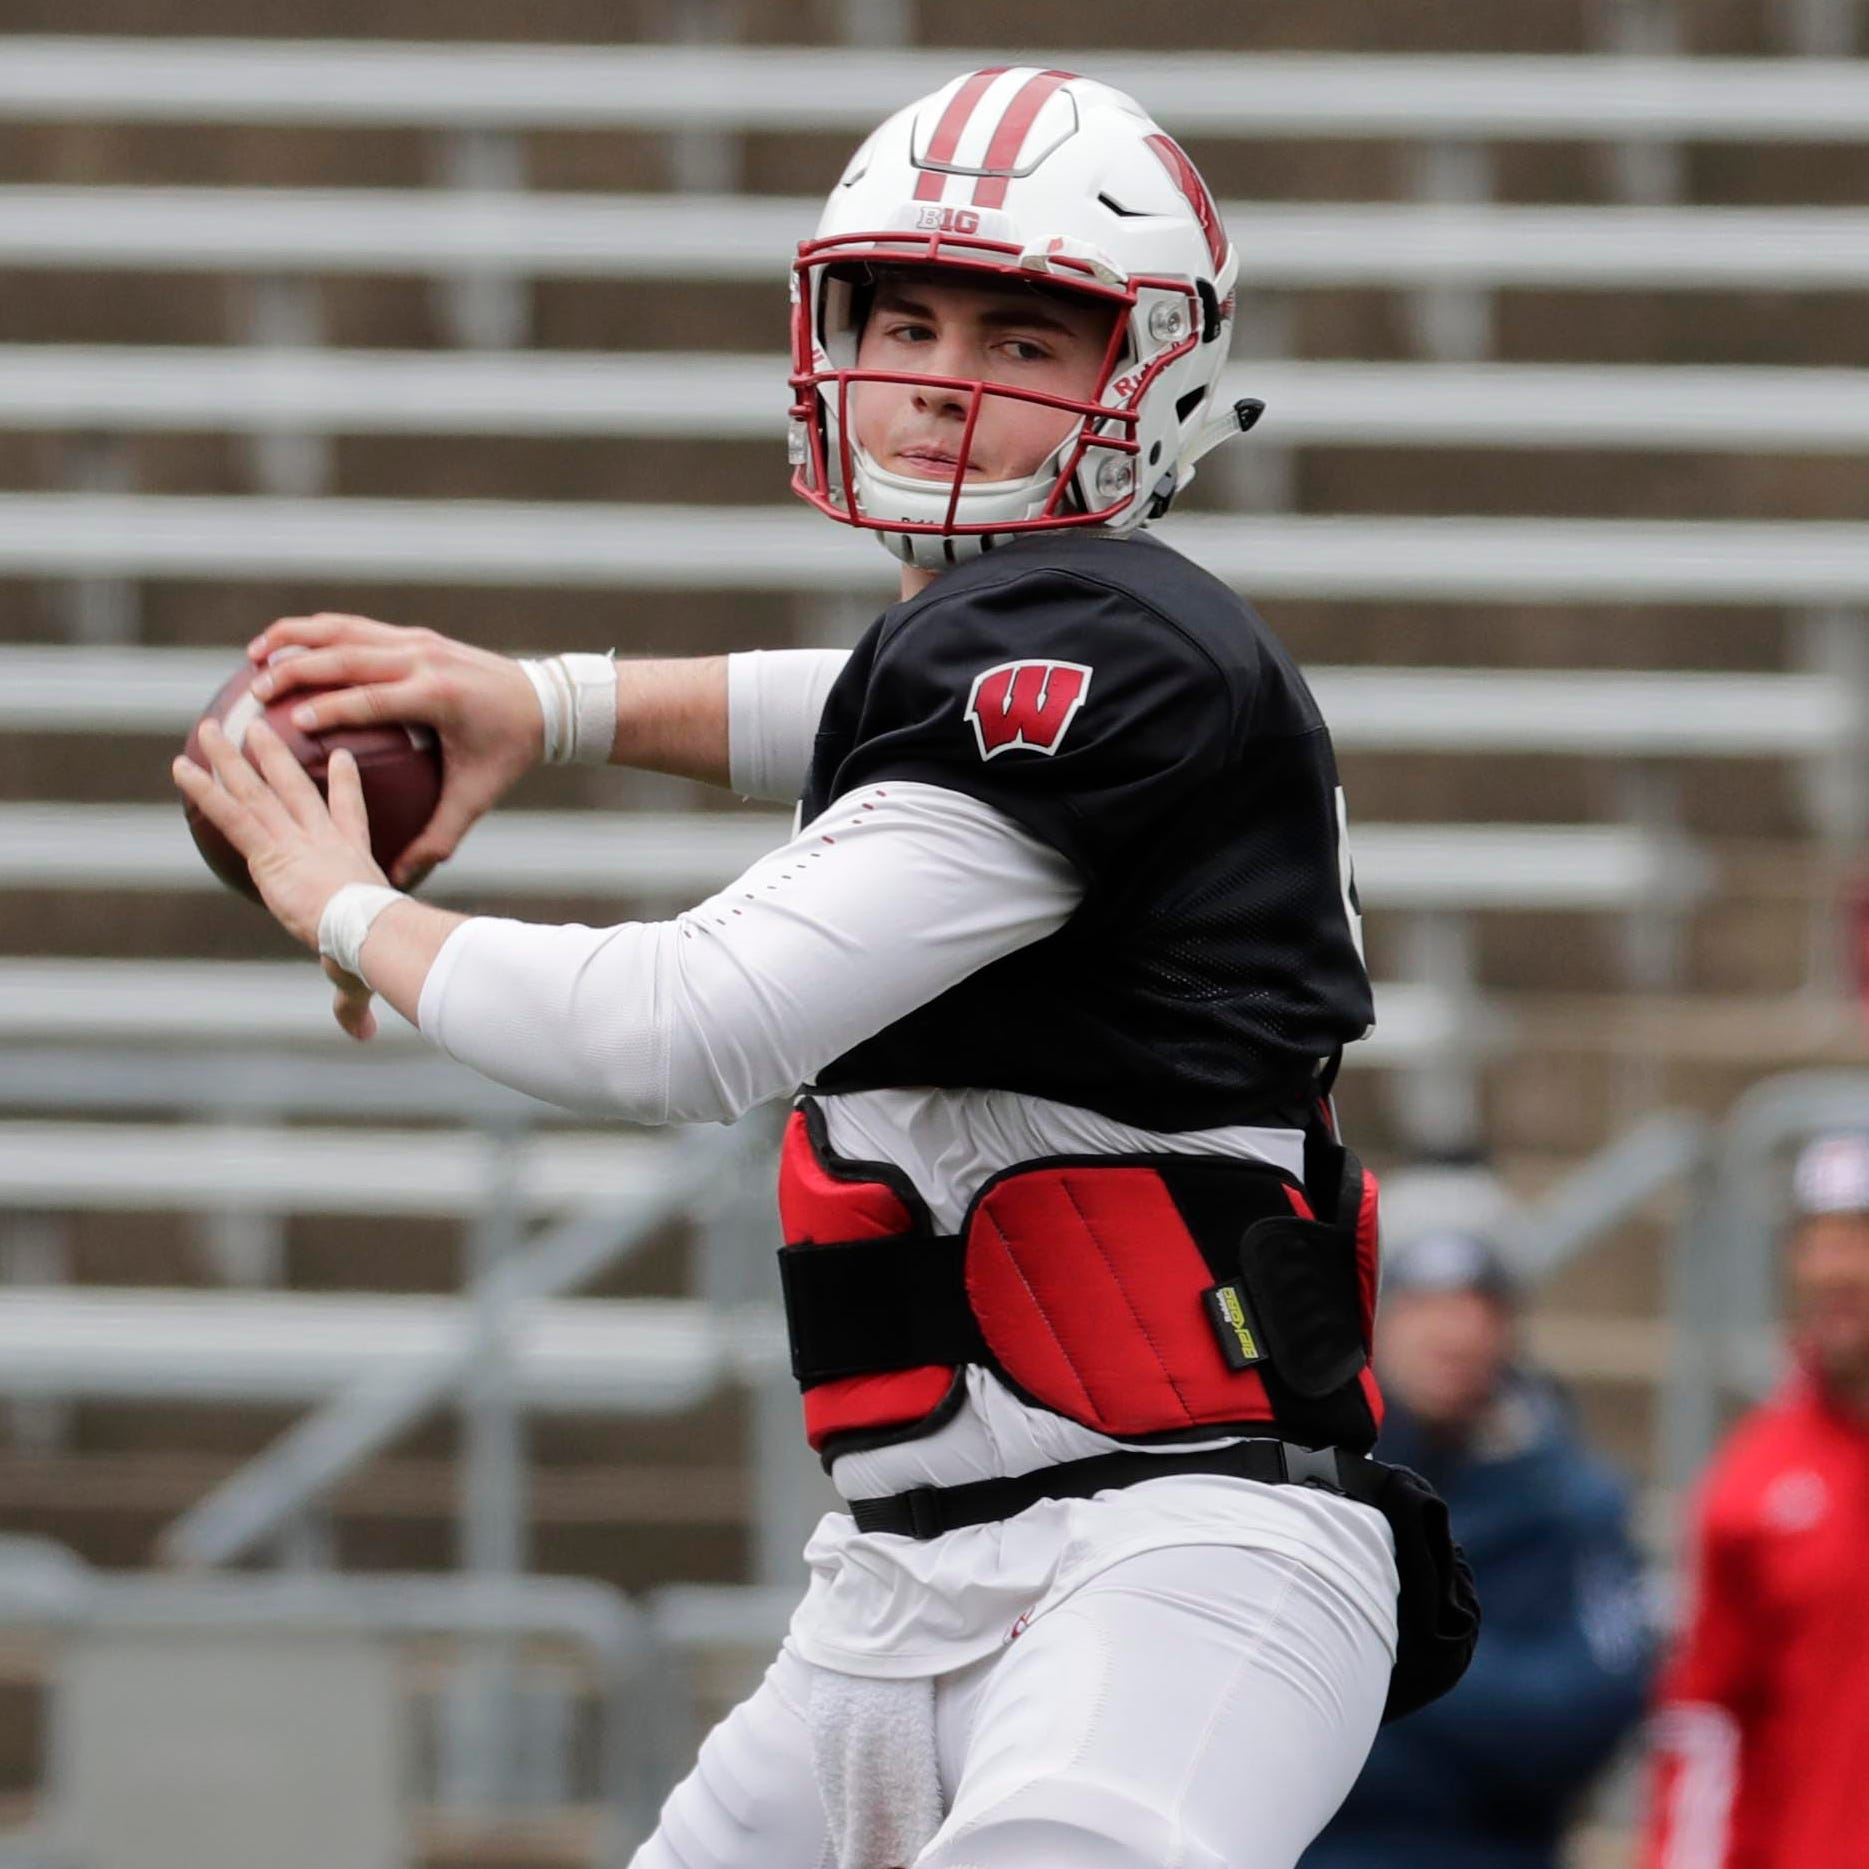 UW's returning quarterbacks have embraced the newcomer, All-American Graham Mertz